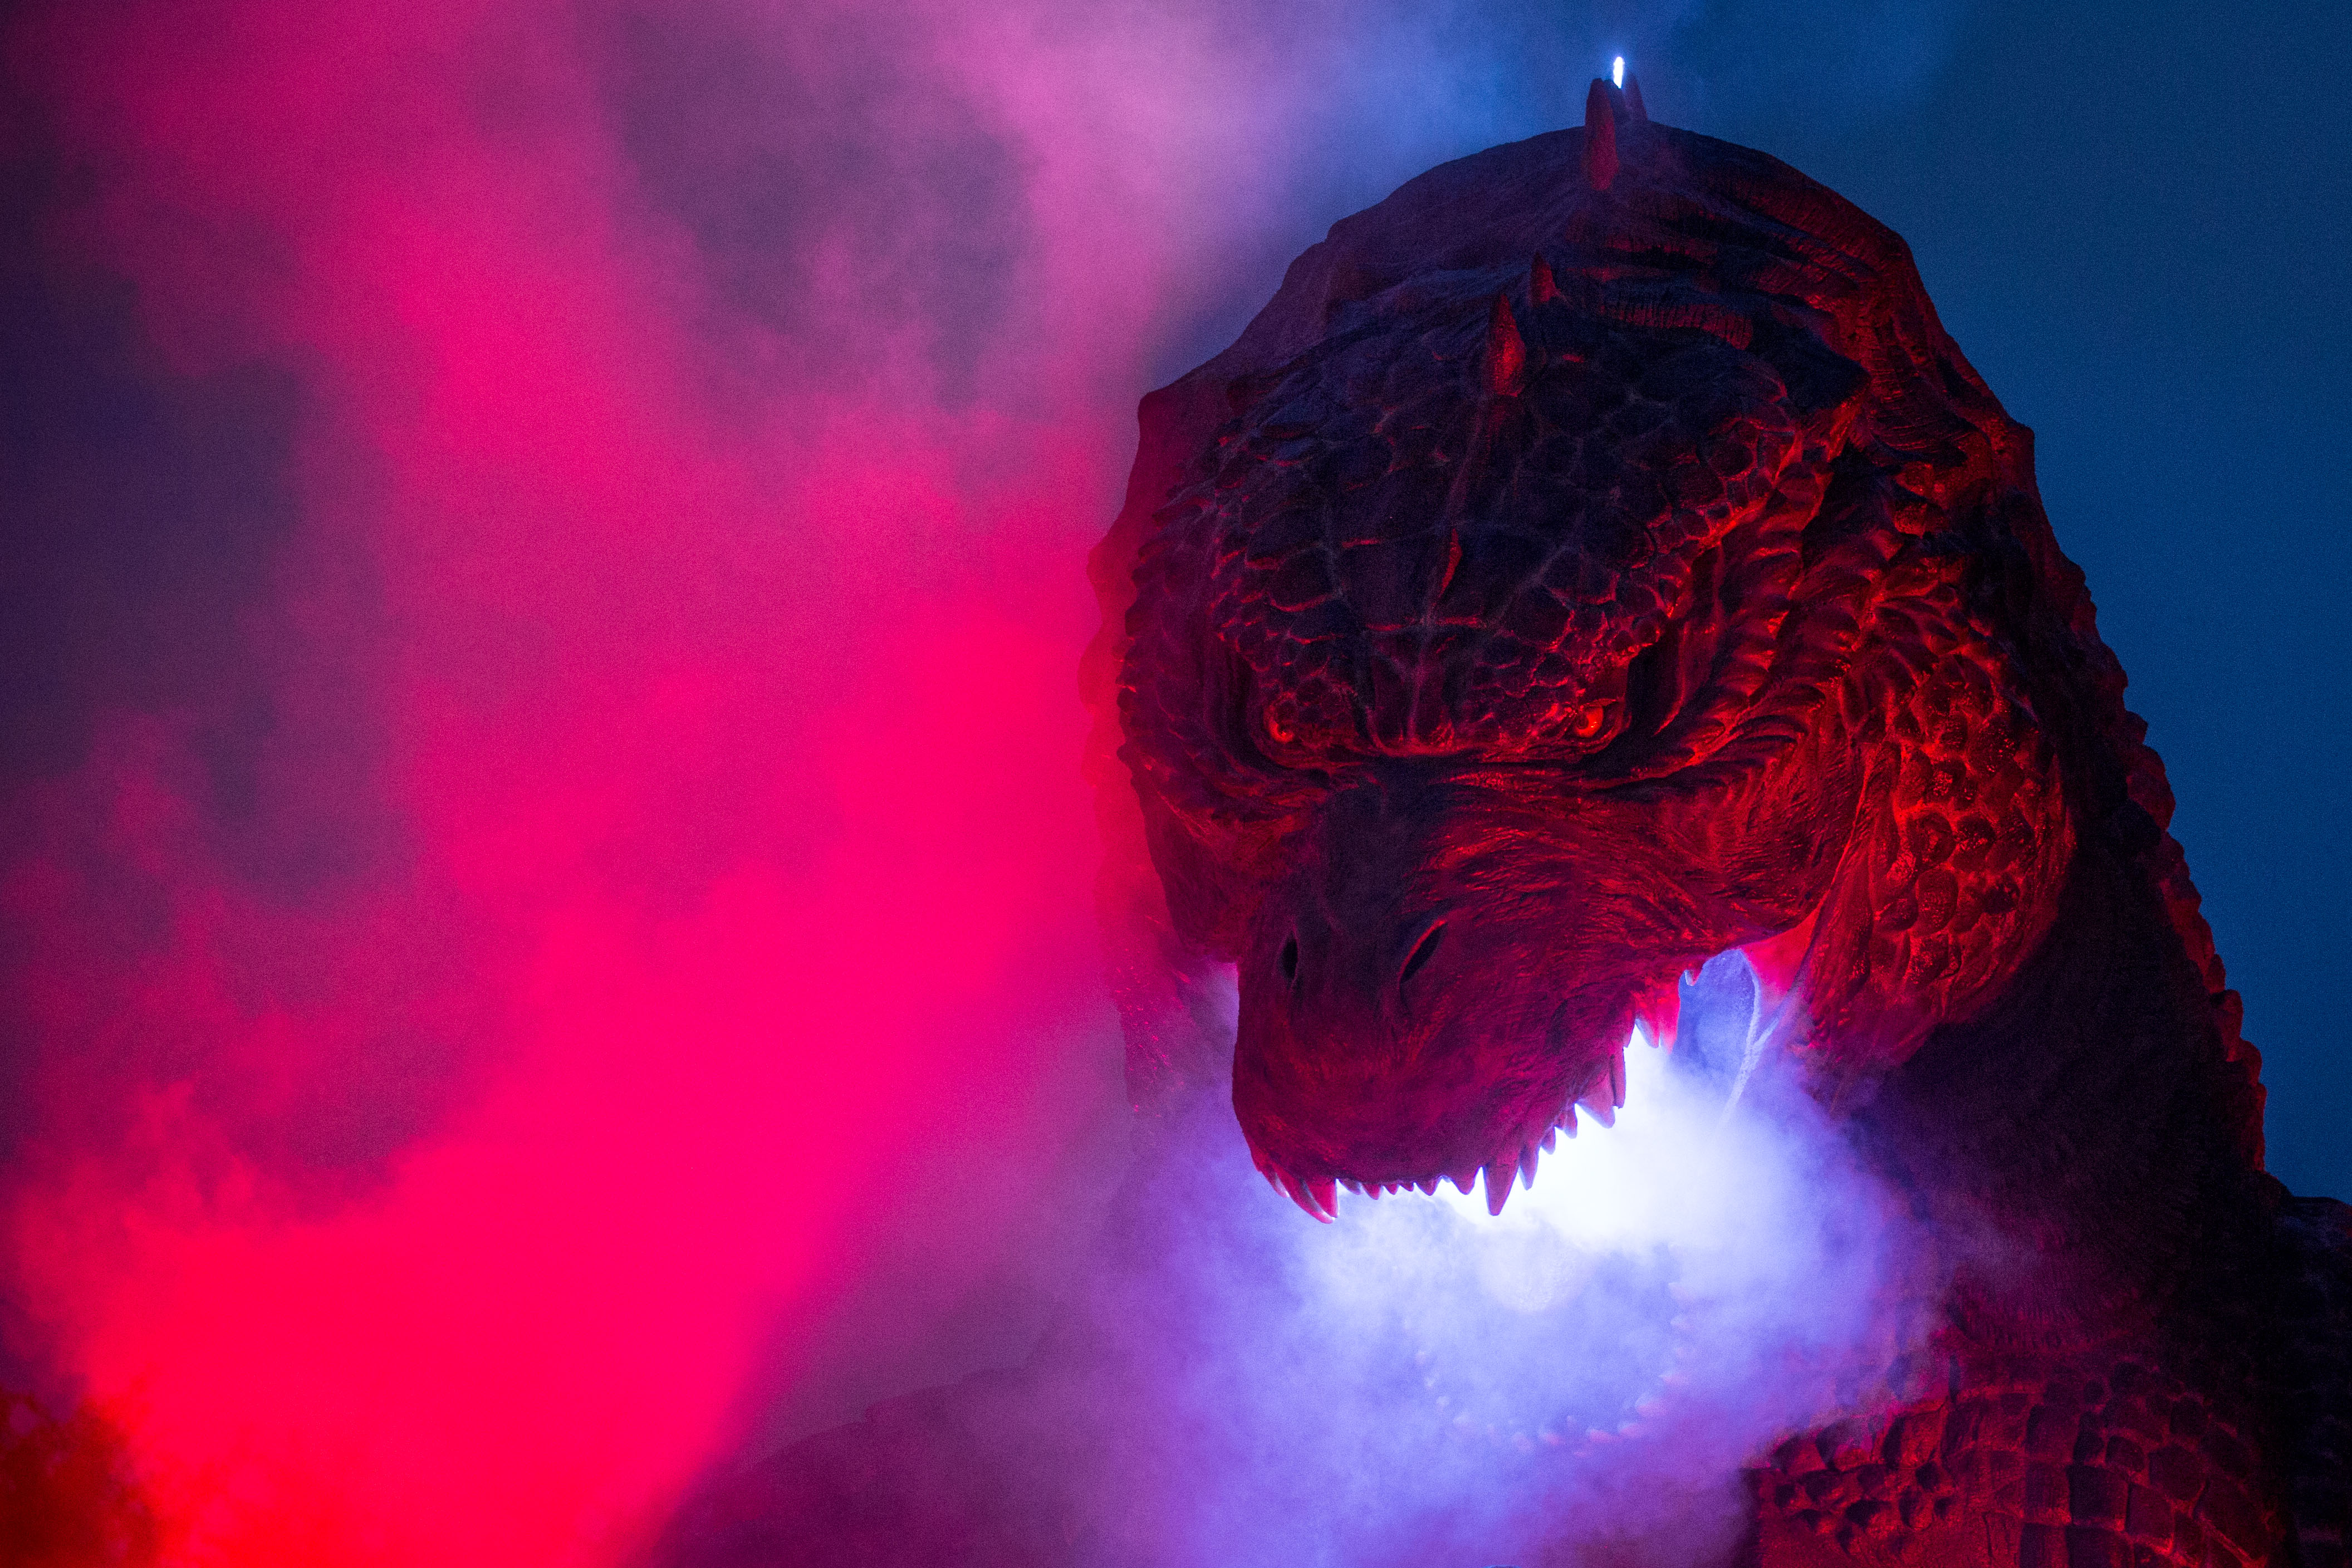 TOKYO, JAPAN - JULY 17:  (EDITORIAL USE ONLY) A 6.6 meter replica Godzilla is lit up during a press preview at Tokyo Midtown